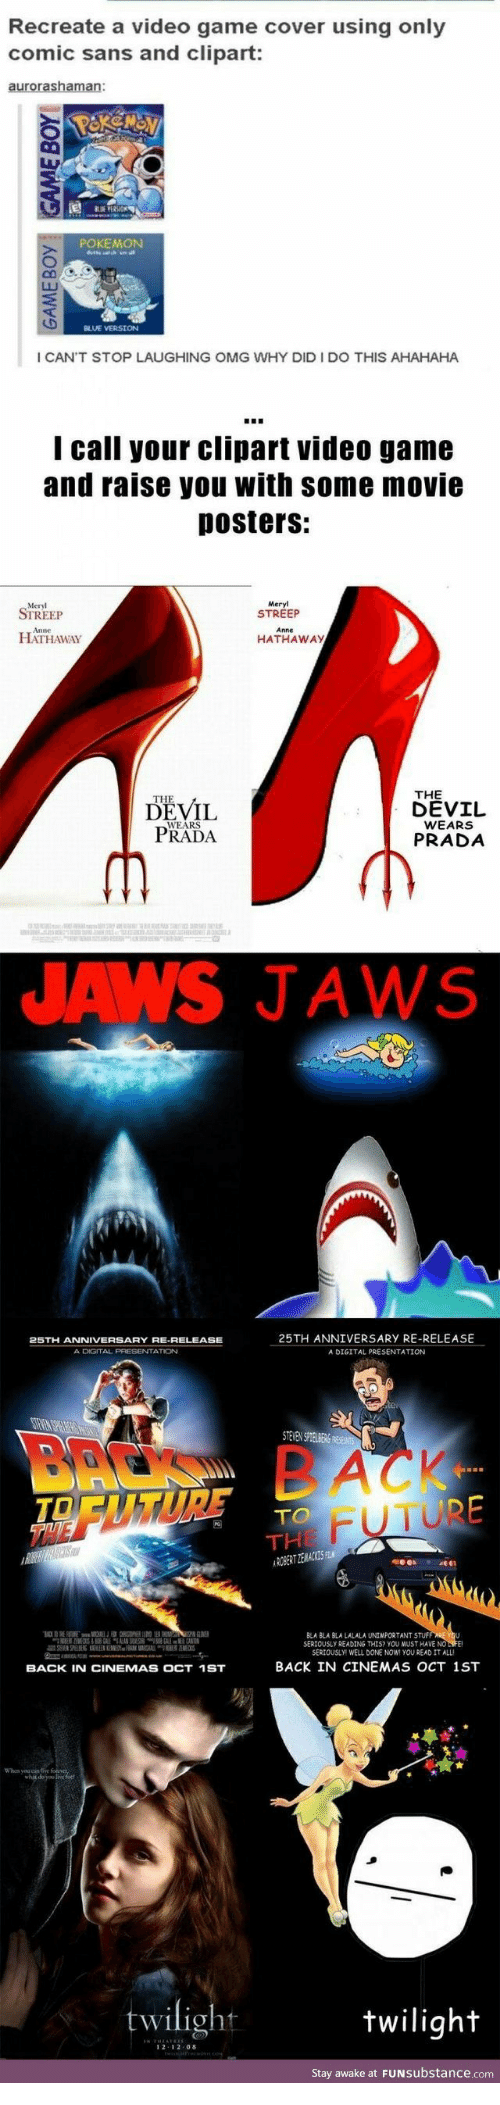 Future, Omg, and Pokemon: Recreate a video game cover using only  comic sans and clipart:  POKEMON  I CAN'T STOP LAUGHING OMG WHY DID I DO THIS AHAHAHA  I call your clipart video game  and raise you with some movie  posters:  Meryl  STREEP  STREEP  HATHAWAY  HATHAWAY  THE  dEvrL  DEVIL  PRADA  WEARS  PRADA  WEARS  JAWS JAWS  25TH ANNIVERSARY RE-RELEASE  A DIGITAL PRESENTATION  A DGITAL PREBENTATION  TO  FUTURE  RLA BLA RLA LALALA UNIMPORTANT STUF  SEREOUSLY READING THIS? YOU MUST HAVE NOL  SERTOUSL  WELL DONENOW! YOU READ IT ALL  BACK IN CINEMAS OCT 1ST  BACK IN CINEMAS OCT 1ST  twilight  twilight  Stay awake at FUNSubstance.com